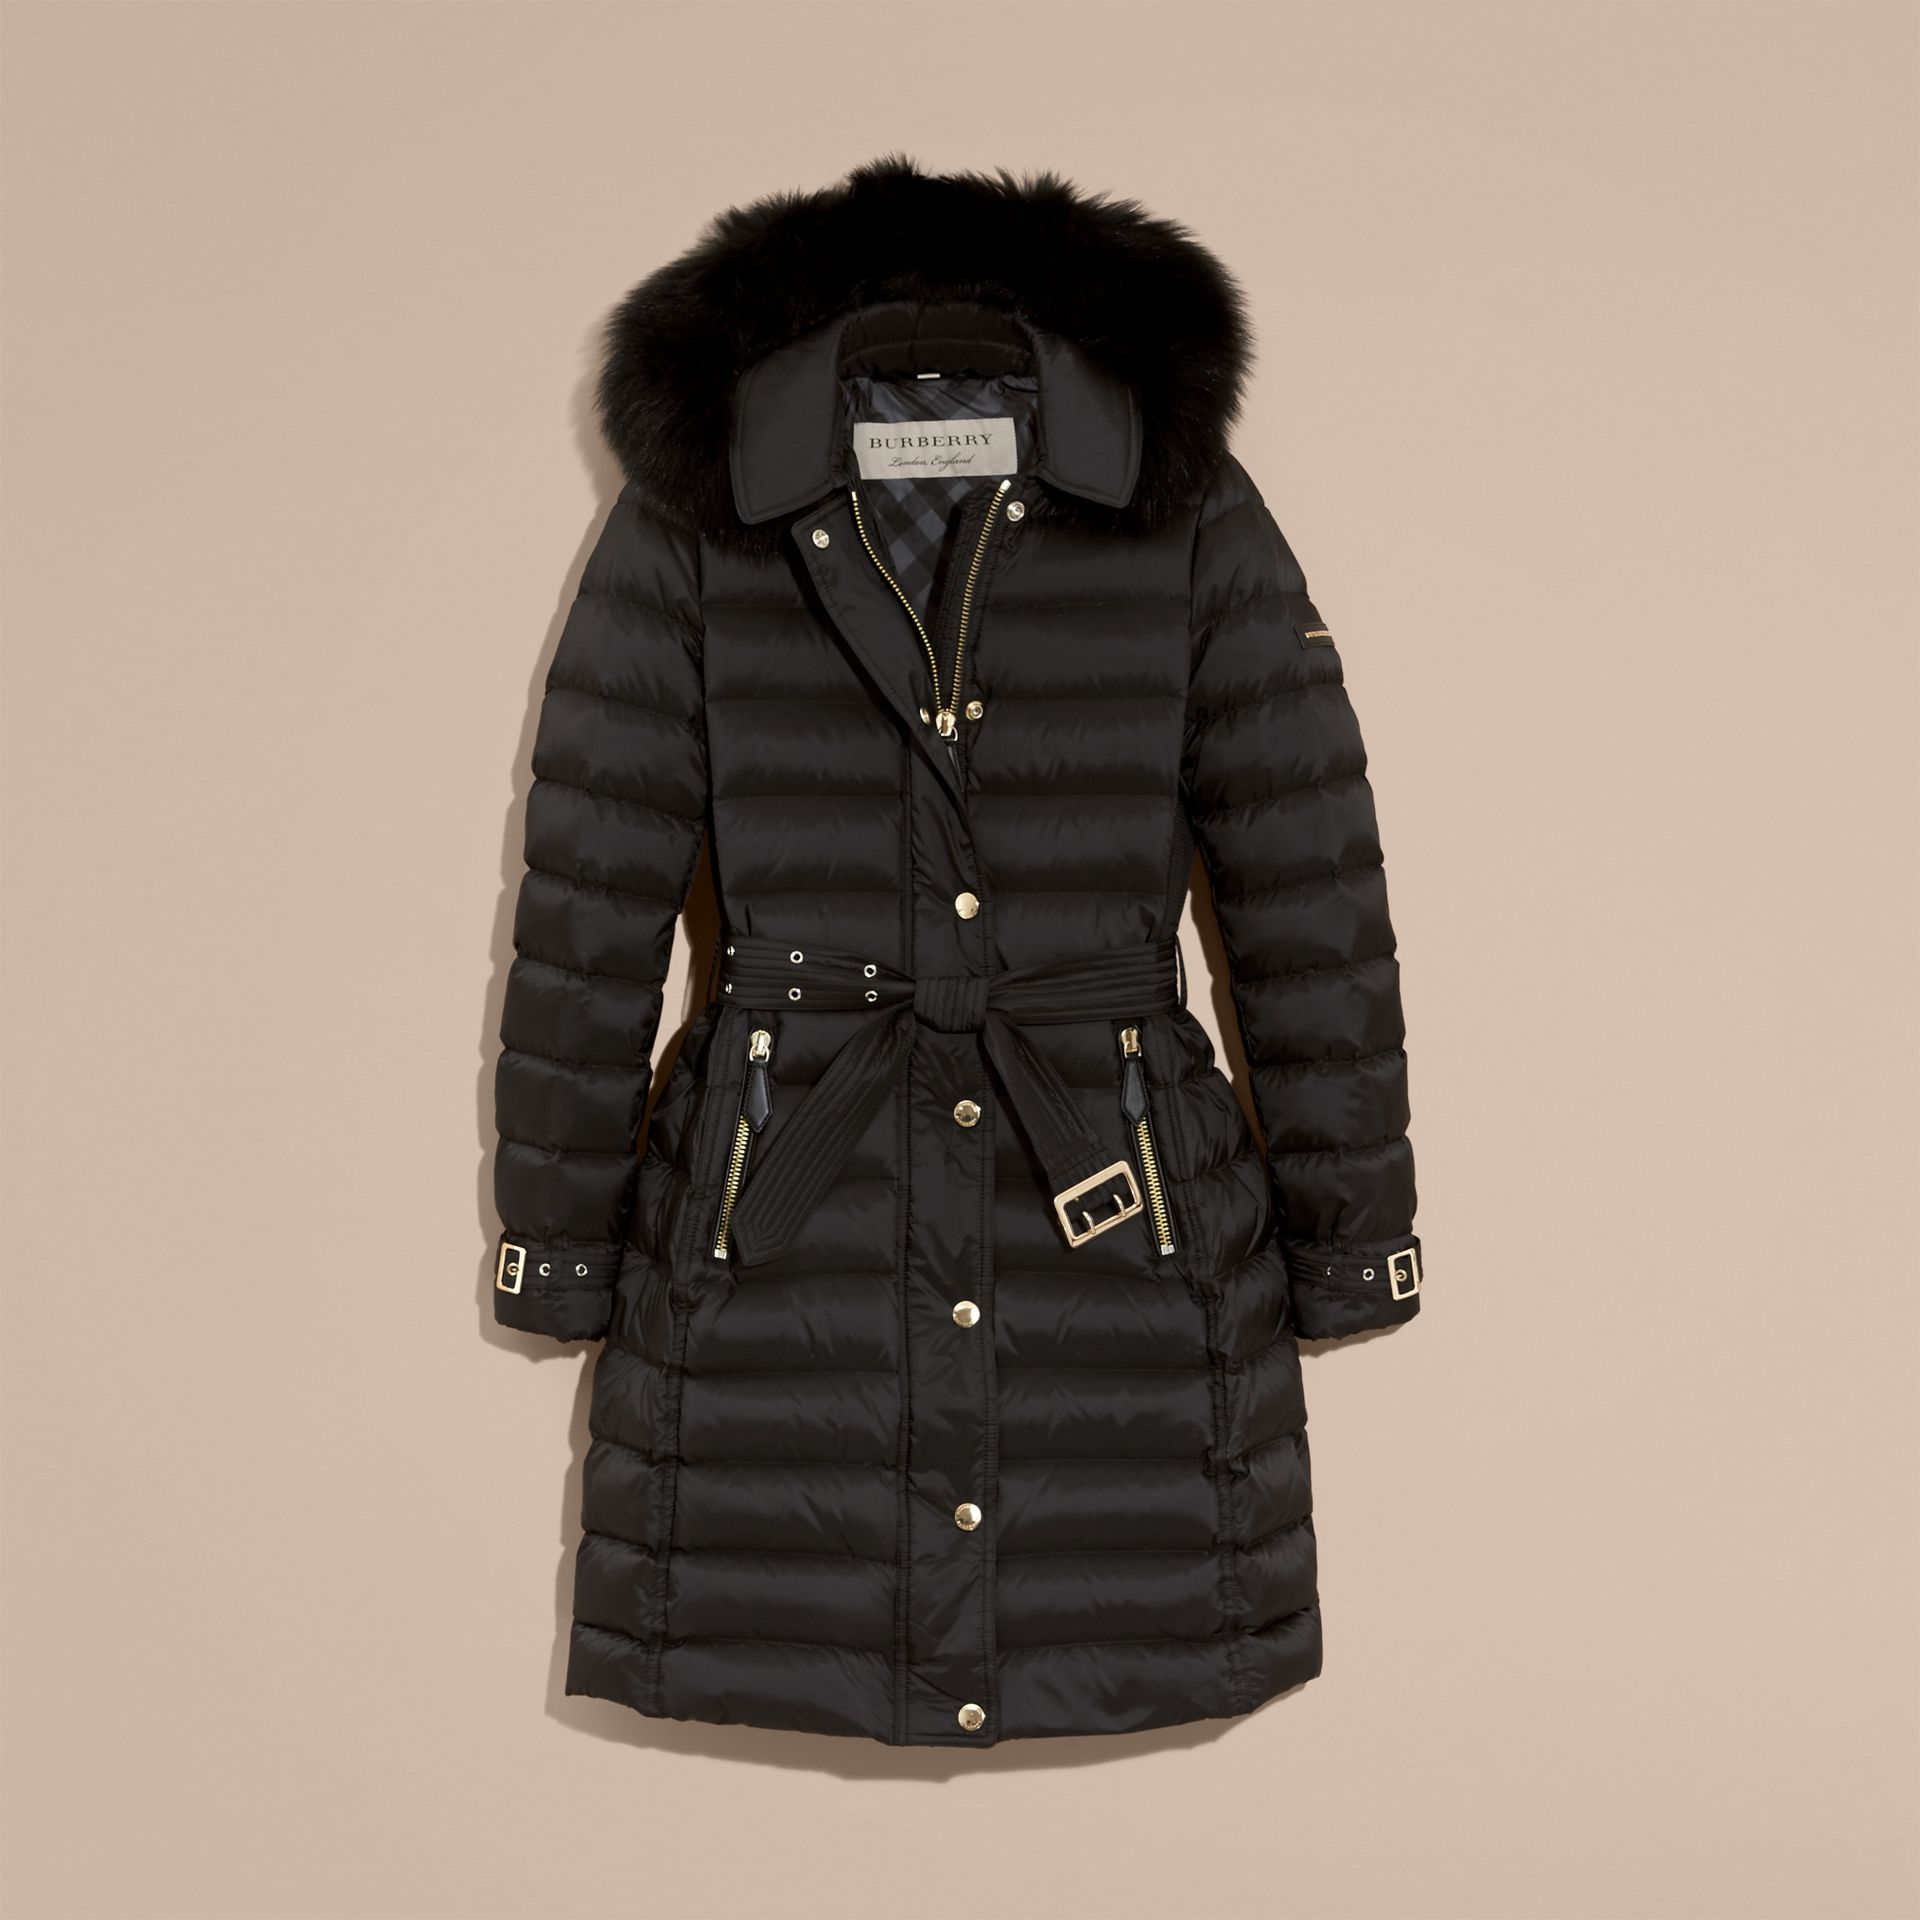 Down-filled Coat with Fox Fur Trim Hood in Black - Women | Burberry Australia - gallery image 4